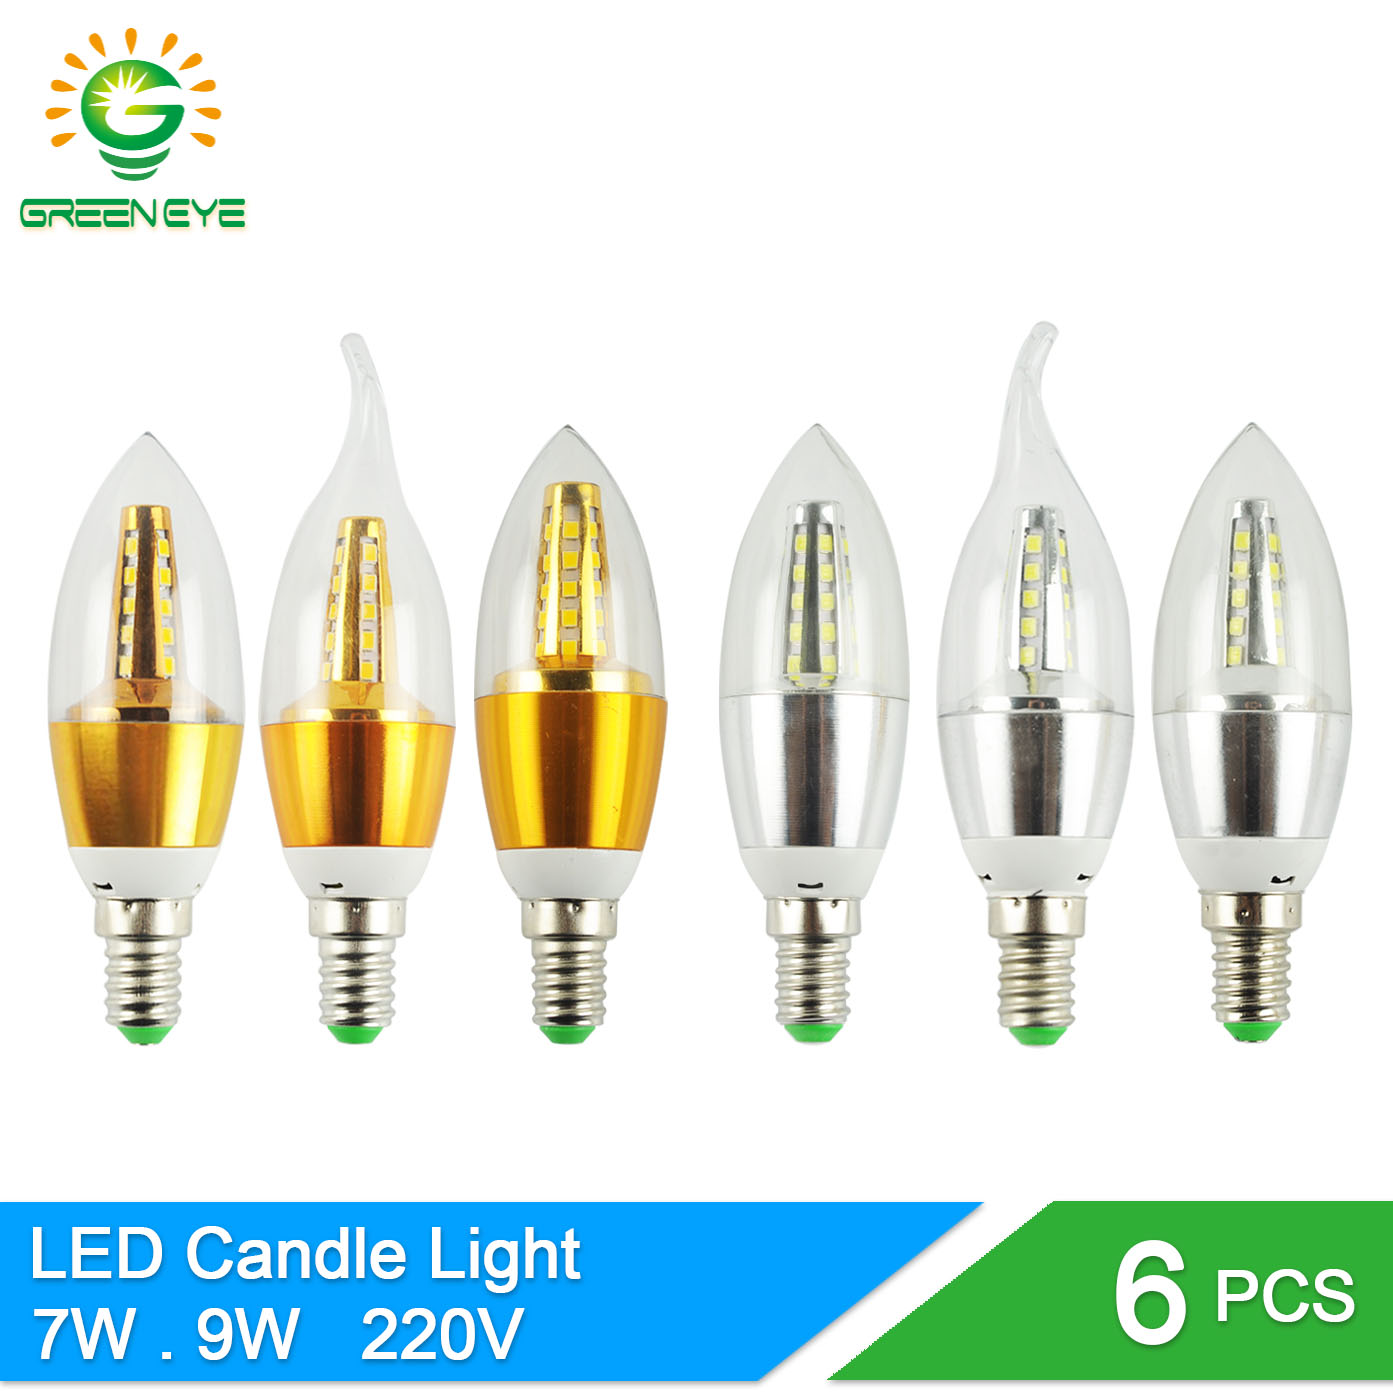 GreenEye 6Pcs E14 LED Candle Bulb Light 7w 9w Aluminum LED Lamp 220V Golden Silver Cool Warm White Ampoule Lampara Vintage Retro candle led bulb e14 9w 12w aluminum shell e14 led light lamp 220v golden silver cool warm white ampoule lampara led smd 2835